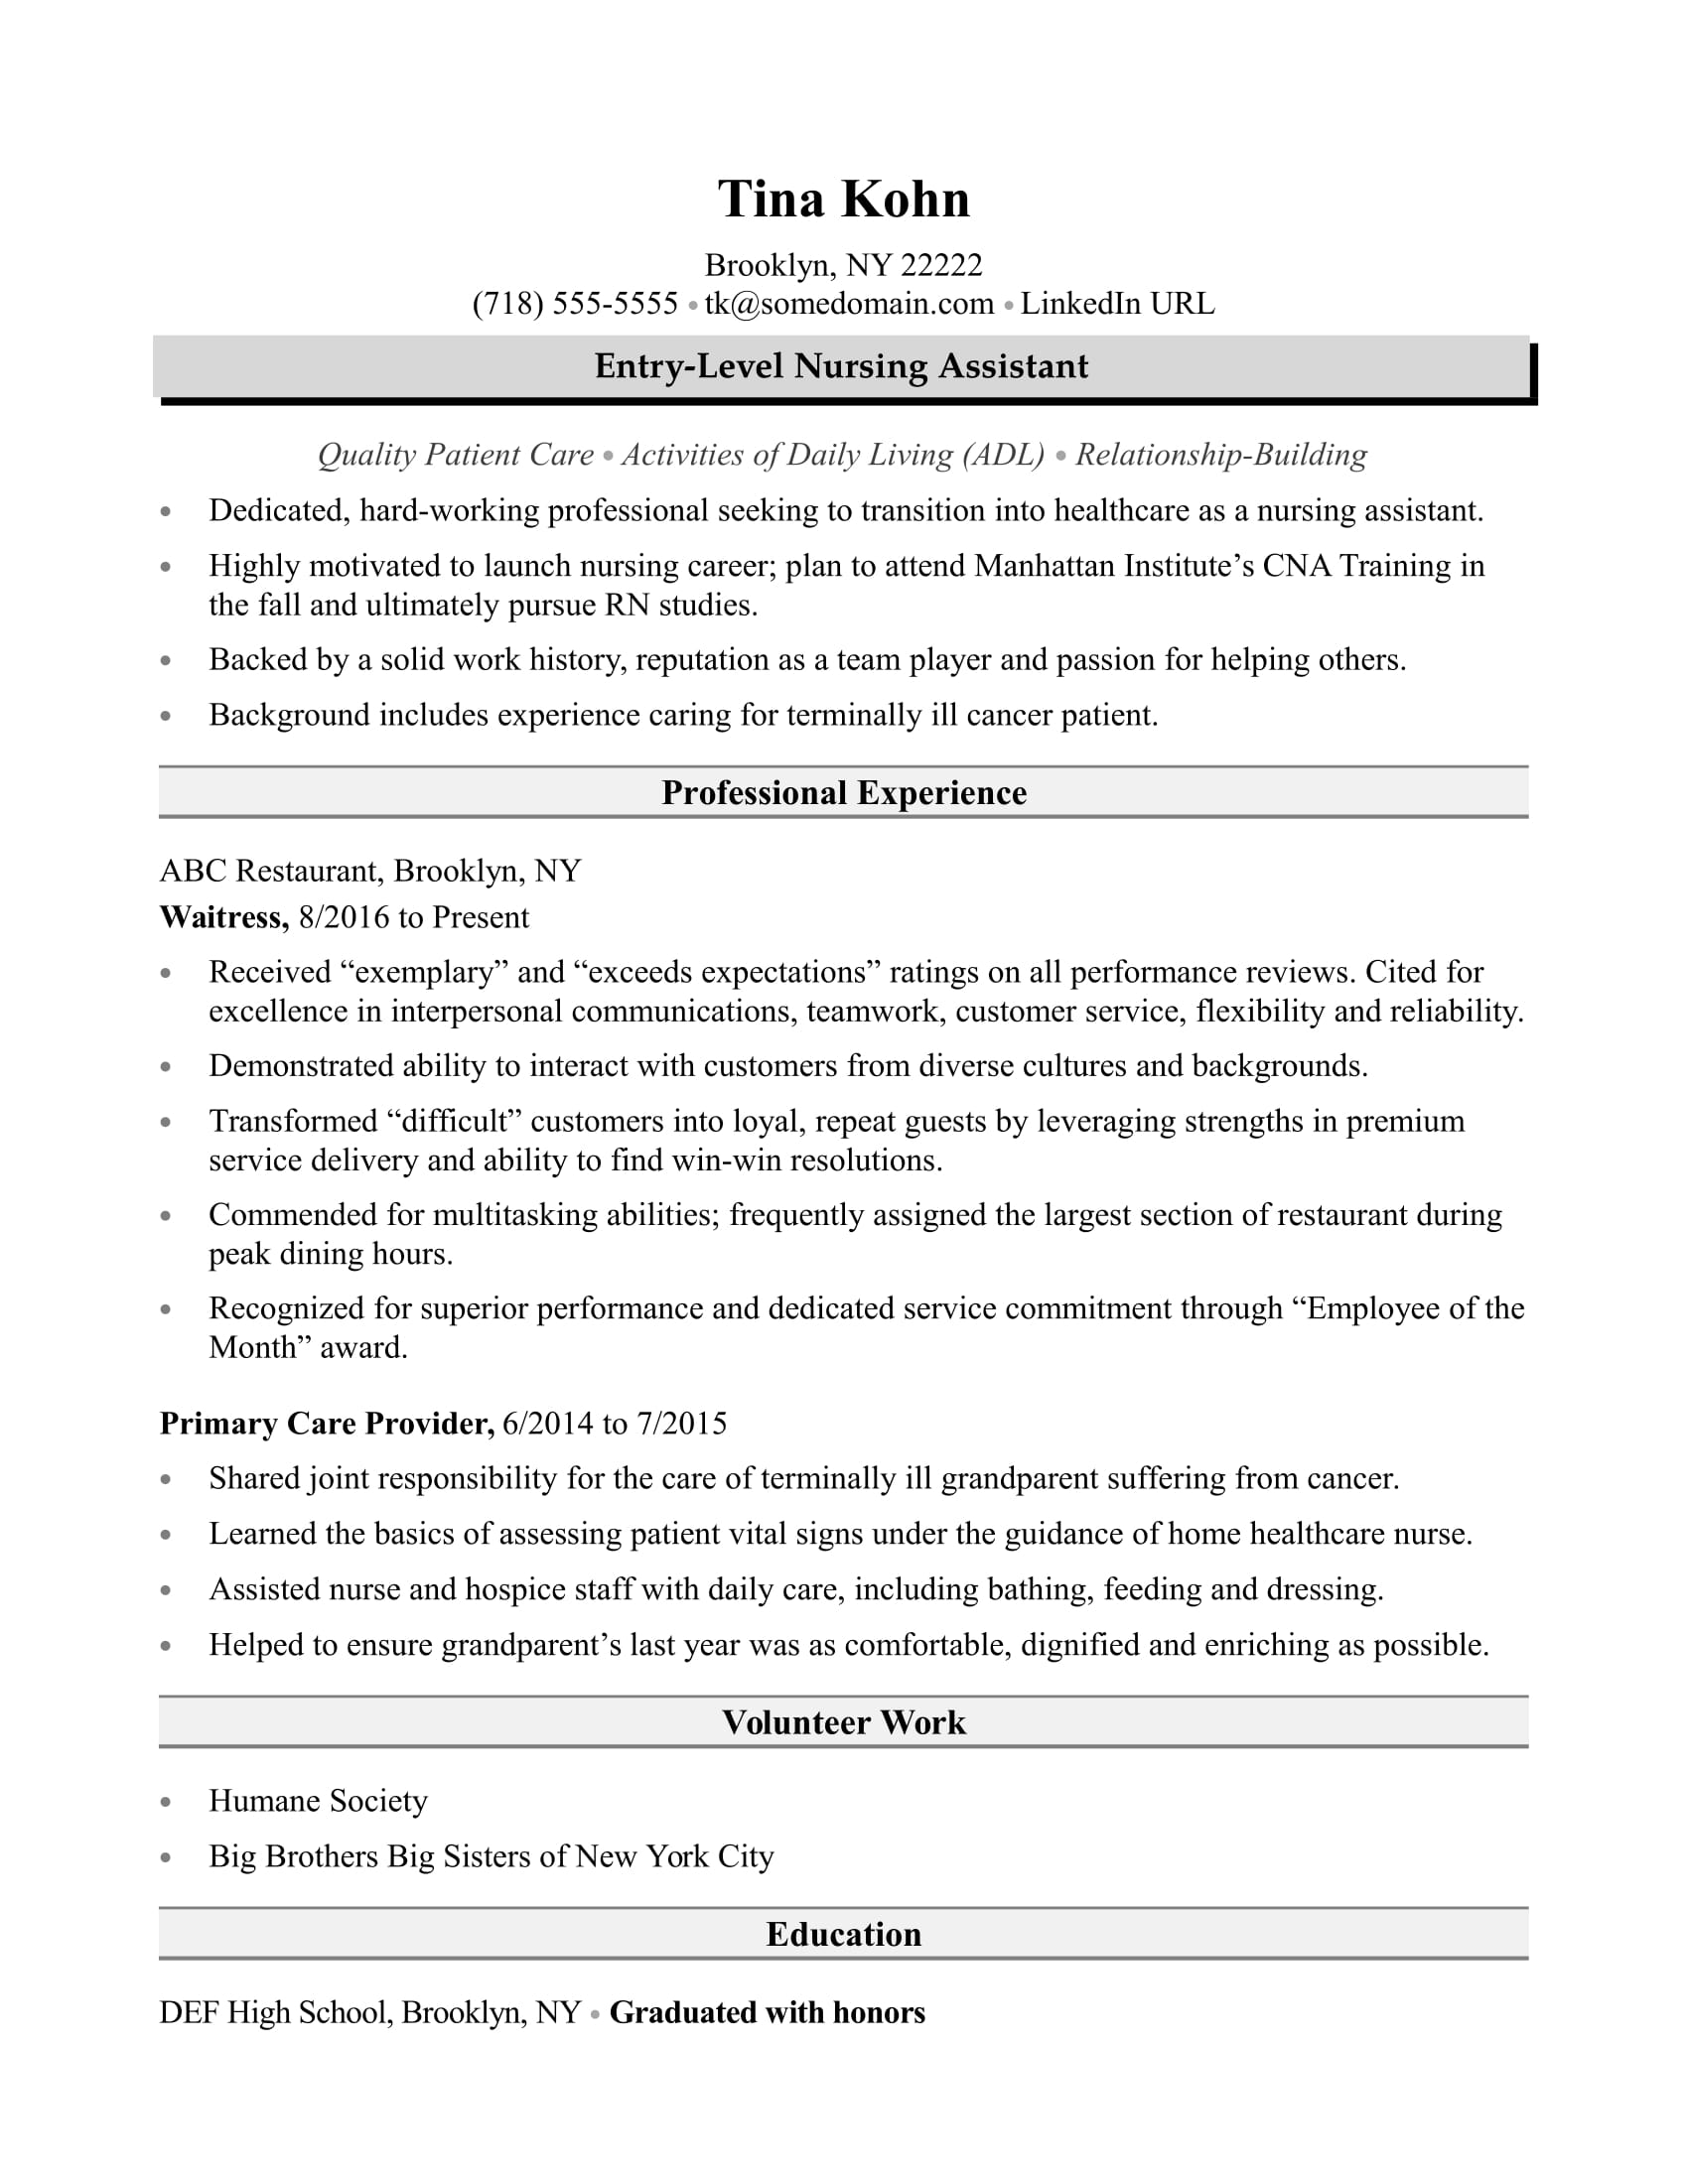 nursing assistant resume sample monster for aide without experience good objectives Resume Sample Resume For Nursing Aide Without Experience